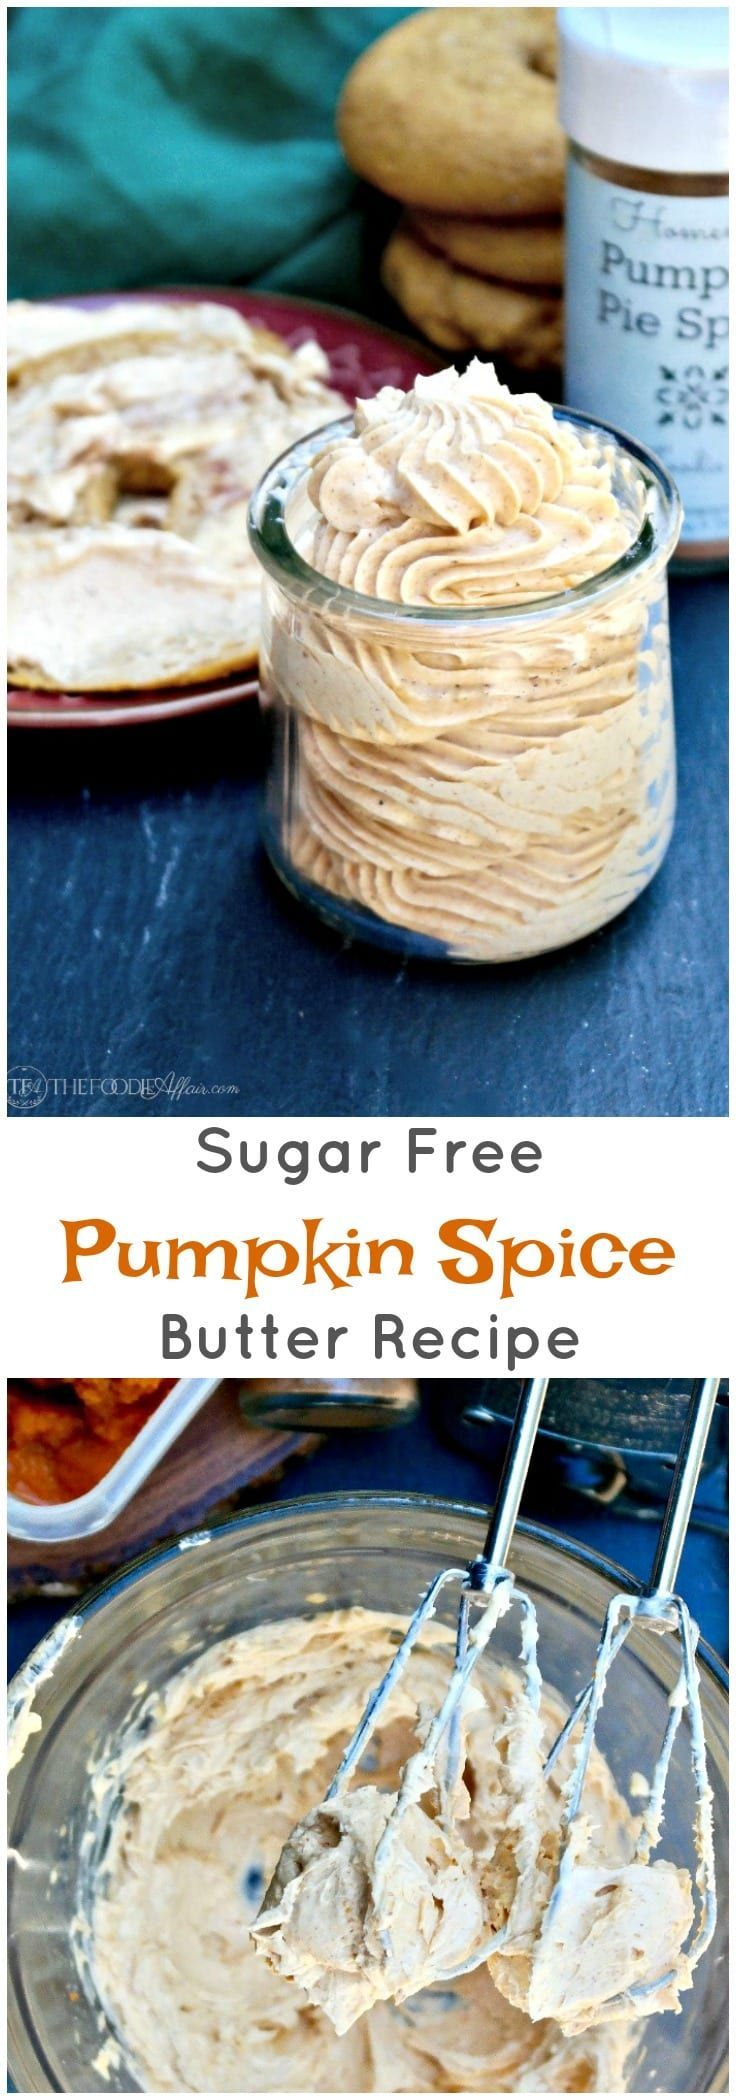 Sugar Free Pumpkin Spice Butter whipped, and then flavored with pumpkin puree and a dash of Fall spices! Add to bagels, toast or in your bulletproof coffee! #PumpkinSpice #Recipe #Butter